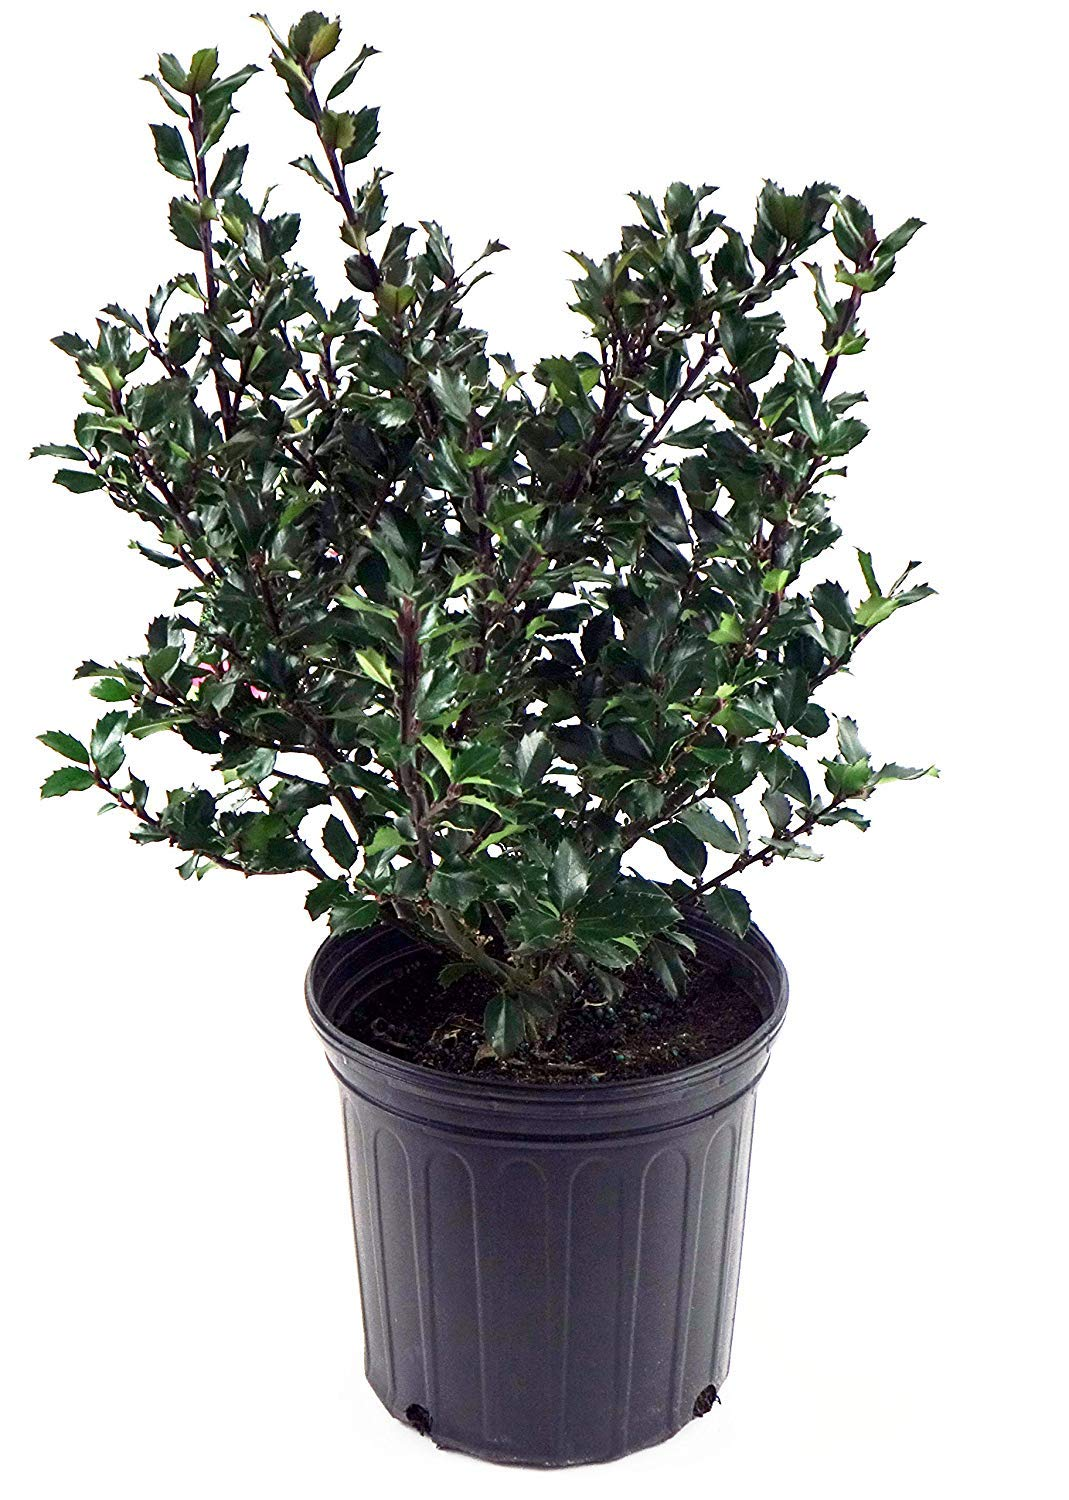 Ilex X meserveae 'Blue Prince' (Blue Holly) Evergreen, #2 - Size Container by Green Promise Farms